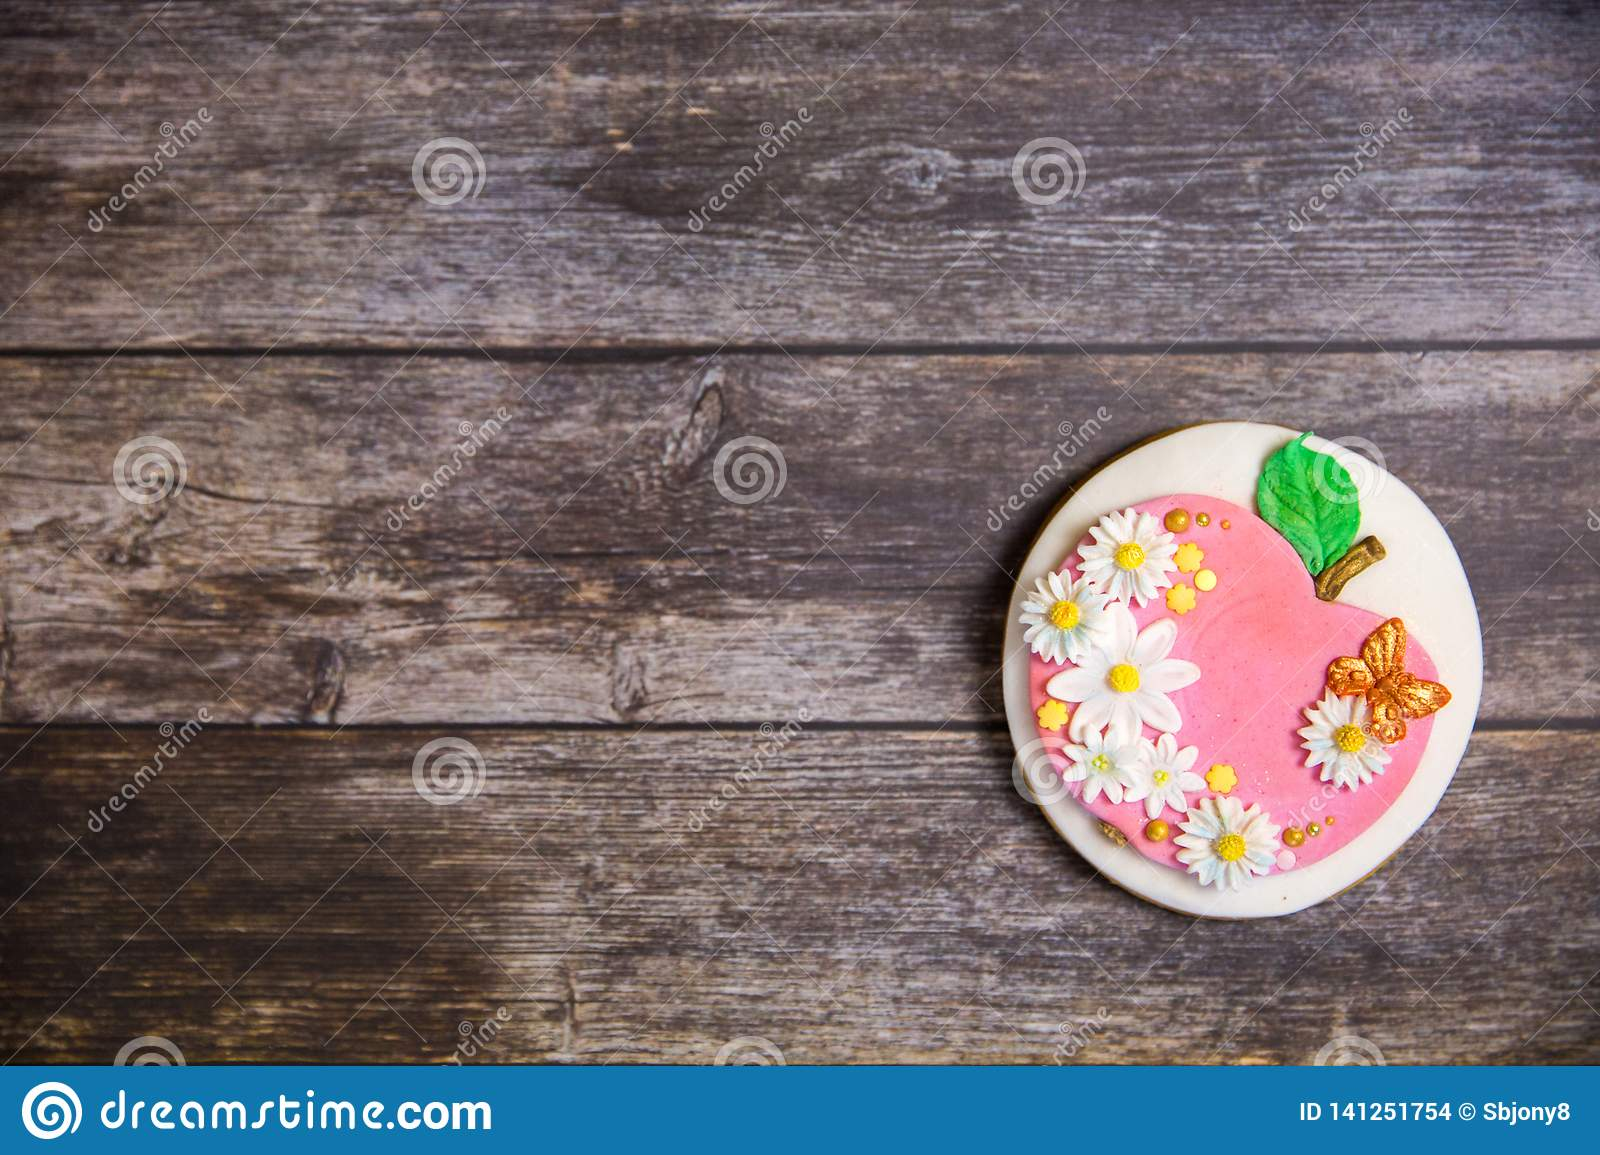 Round handpainted gingerbread on wooden background. Flat lay. Apple with flowers and butterflies. Copy space. Sweet dessert as a